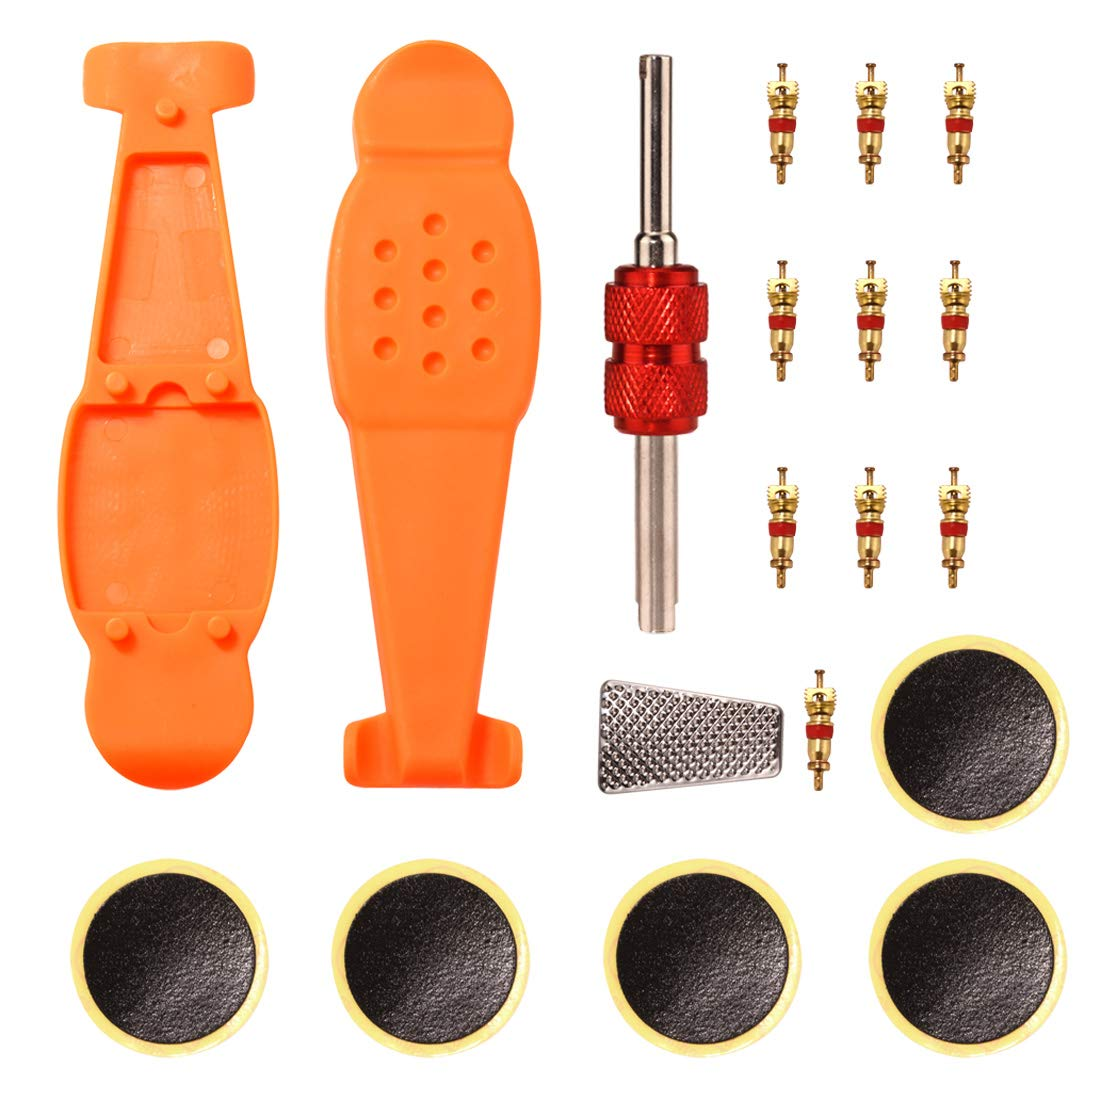 Yuauy 5 sets 2 in 1 Single Dual Head Valve Core Remover Tire Repair Tool